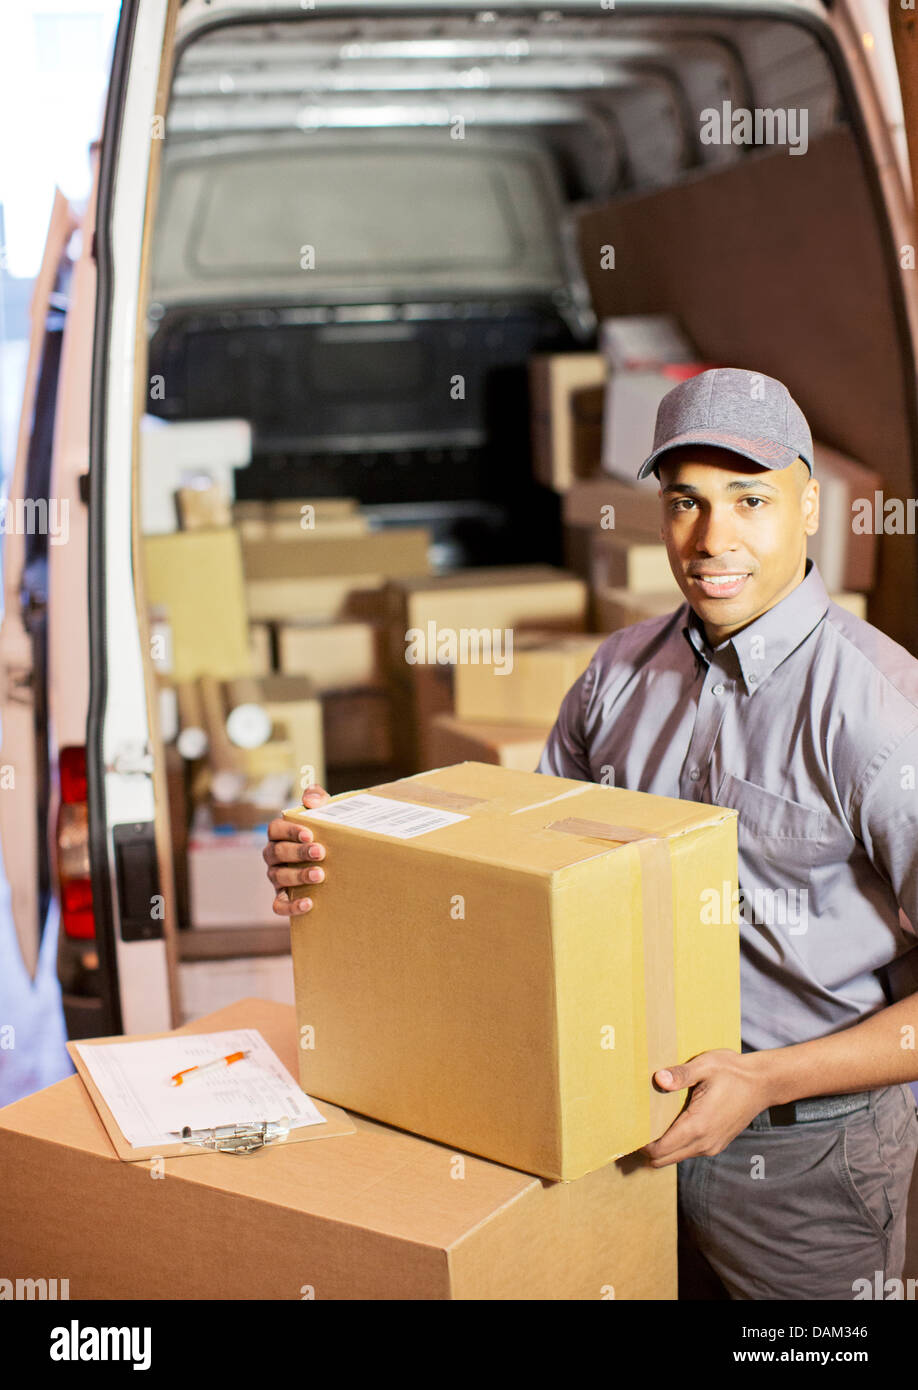 Delivery boy loading boxes into van - Stock Image